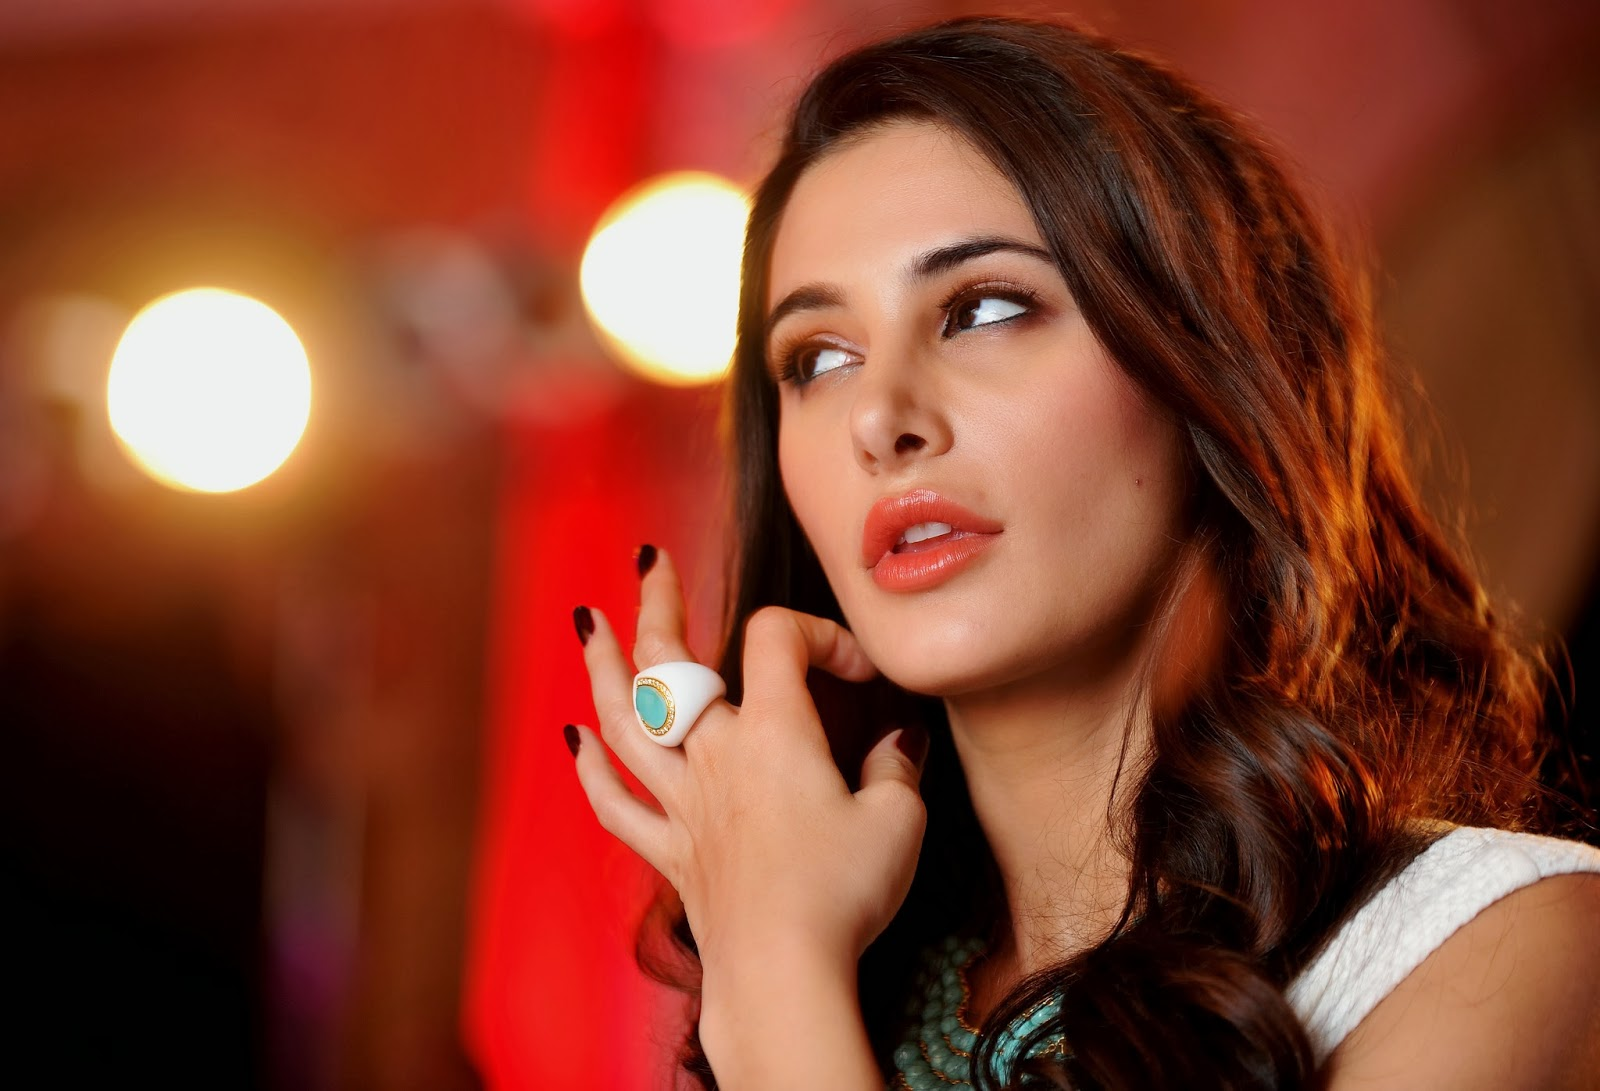 Fantastic HD Pictures of Nargis Fakhri | HD Wallpapers of Nargis Fakhri